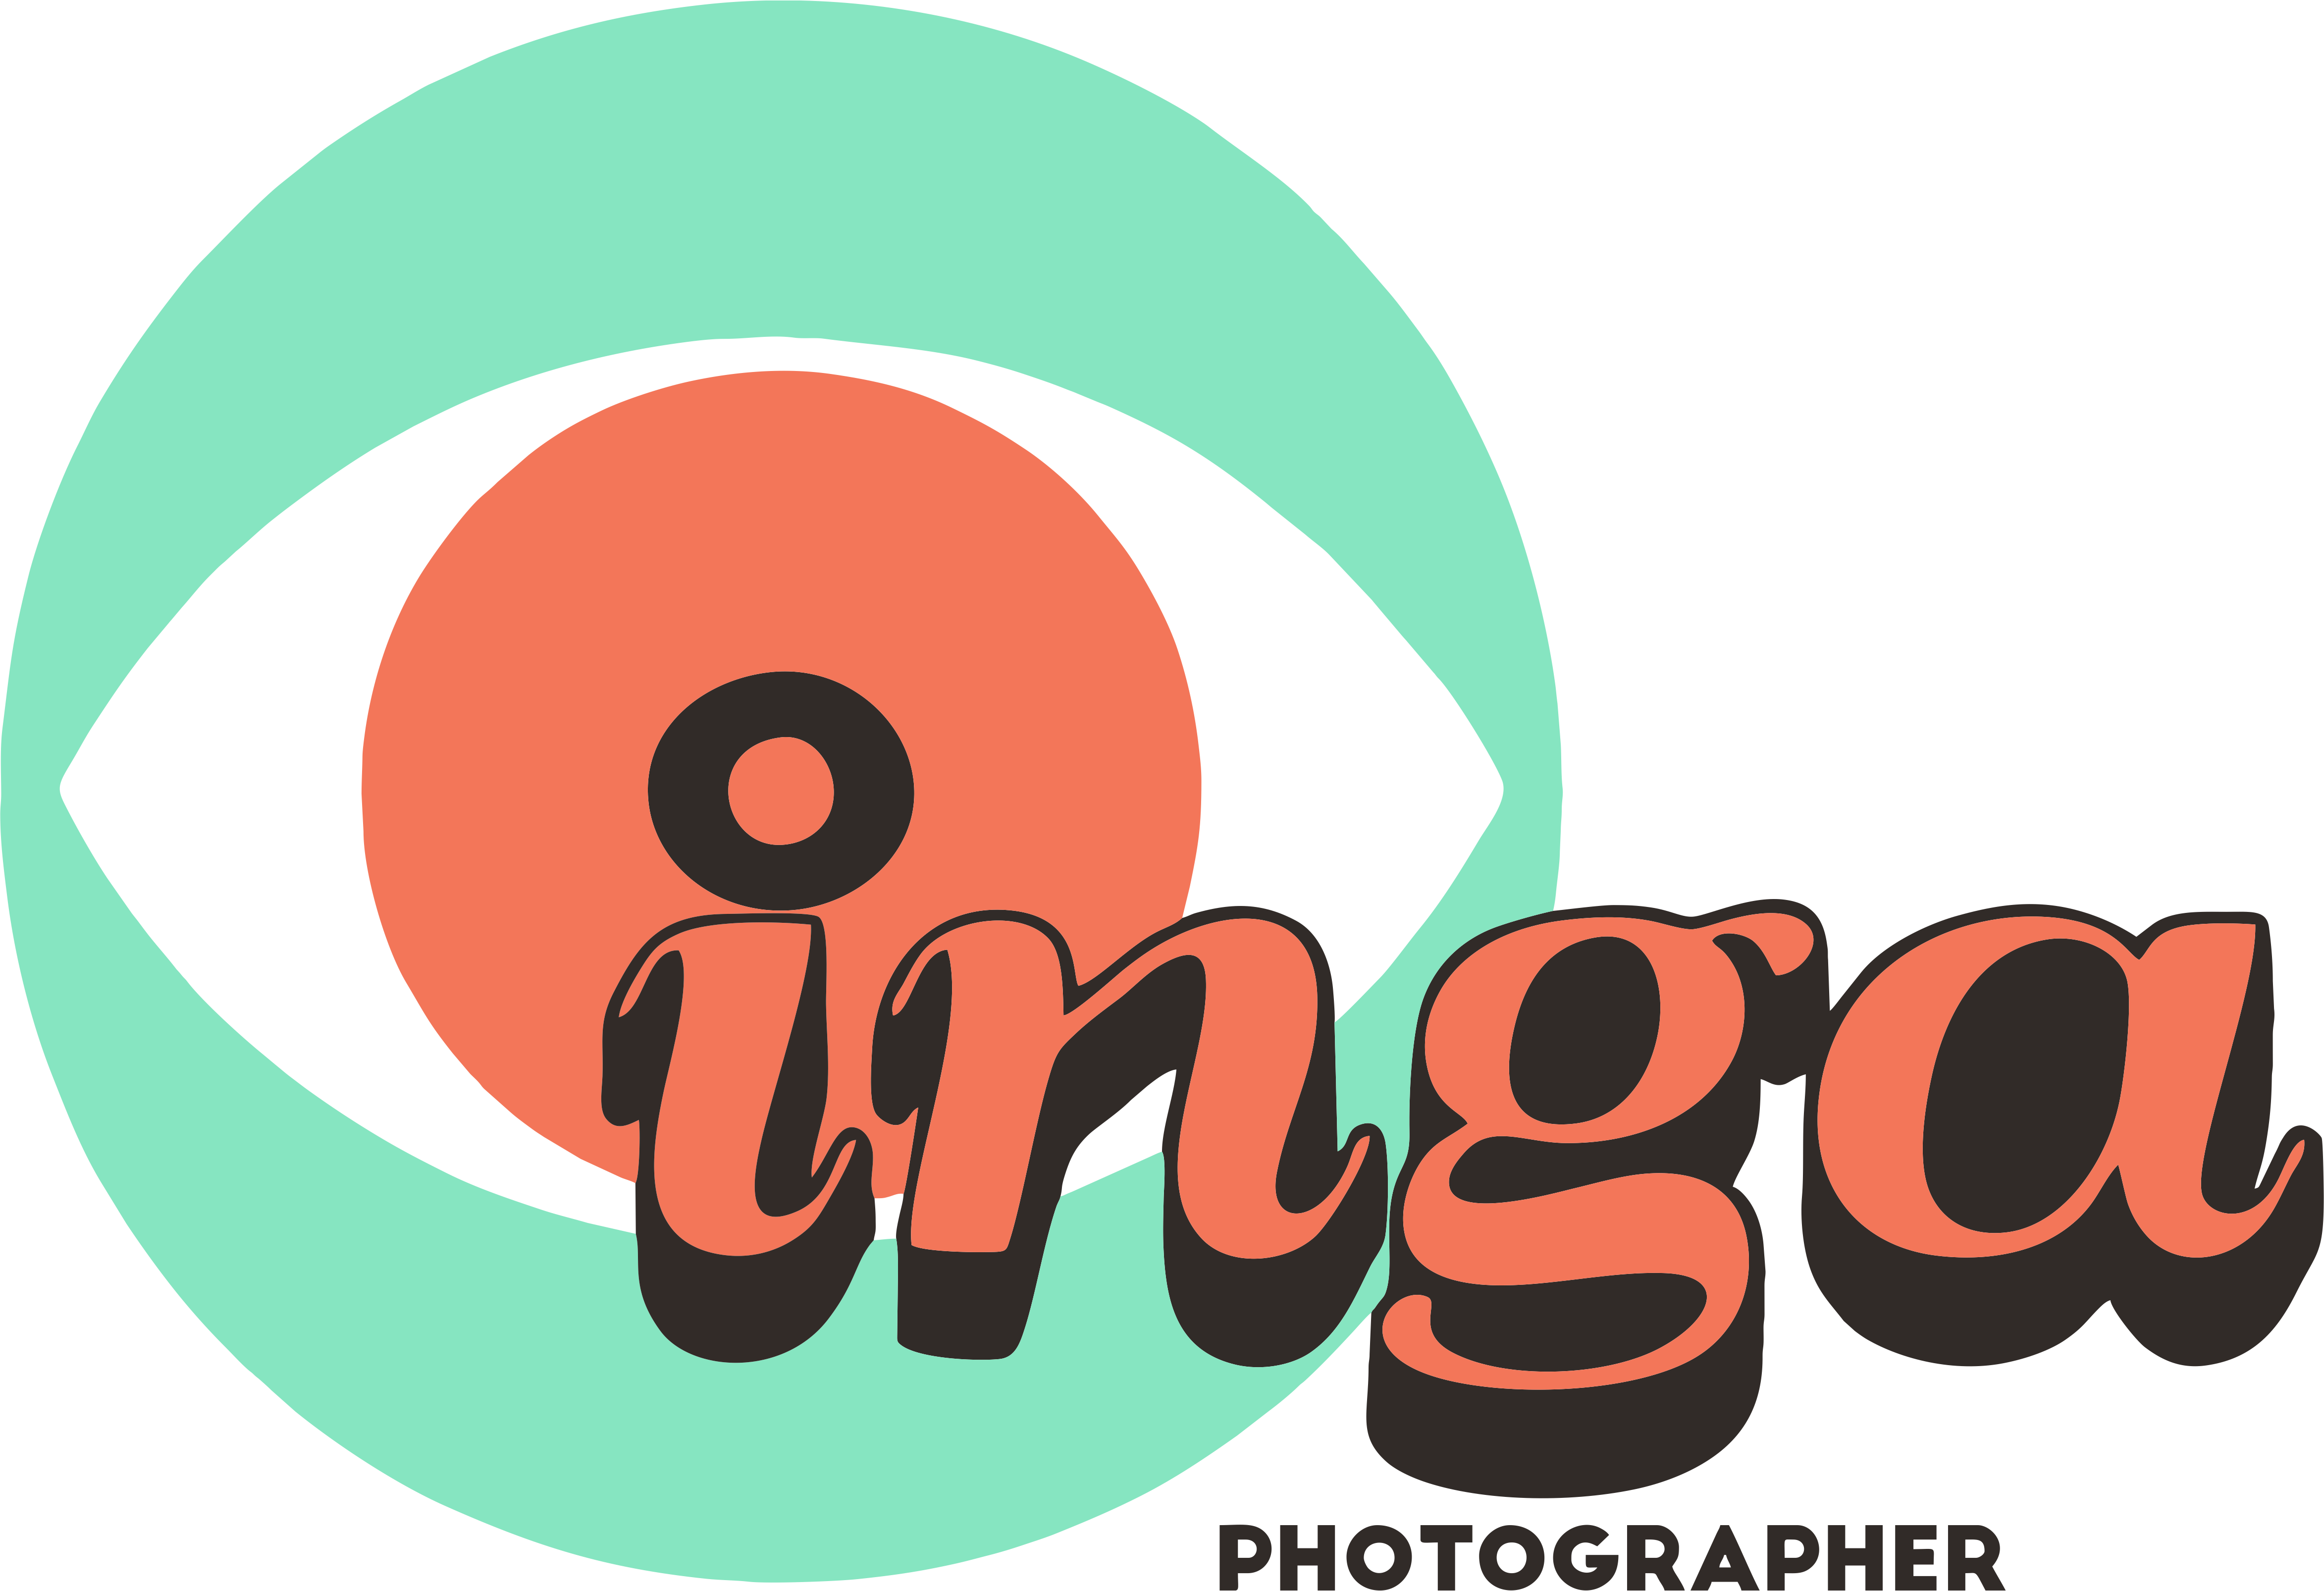 Inga Freitas Photographer